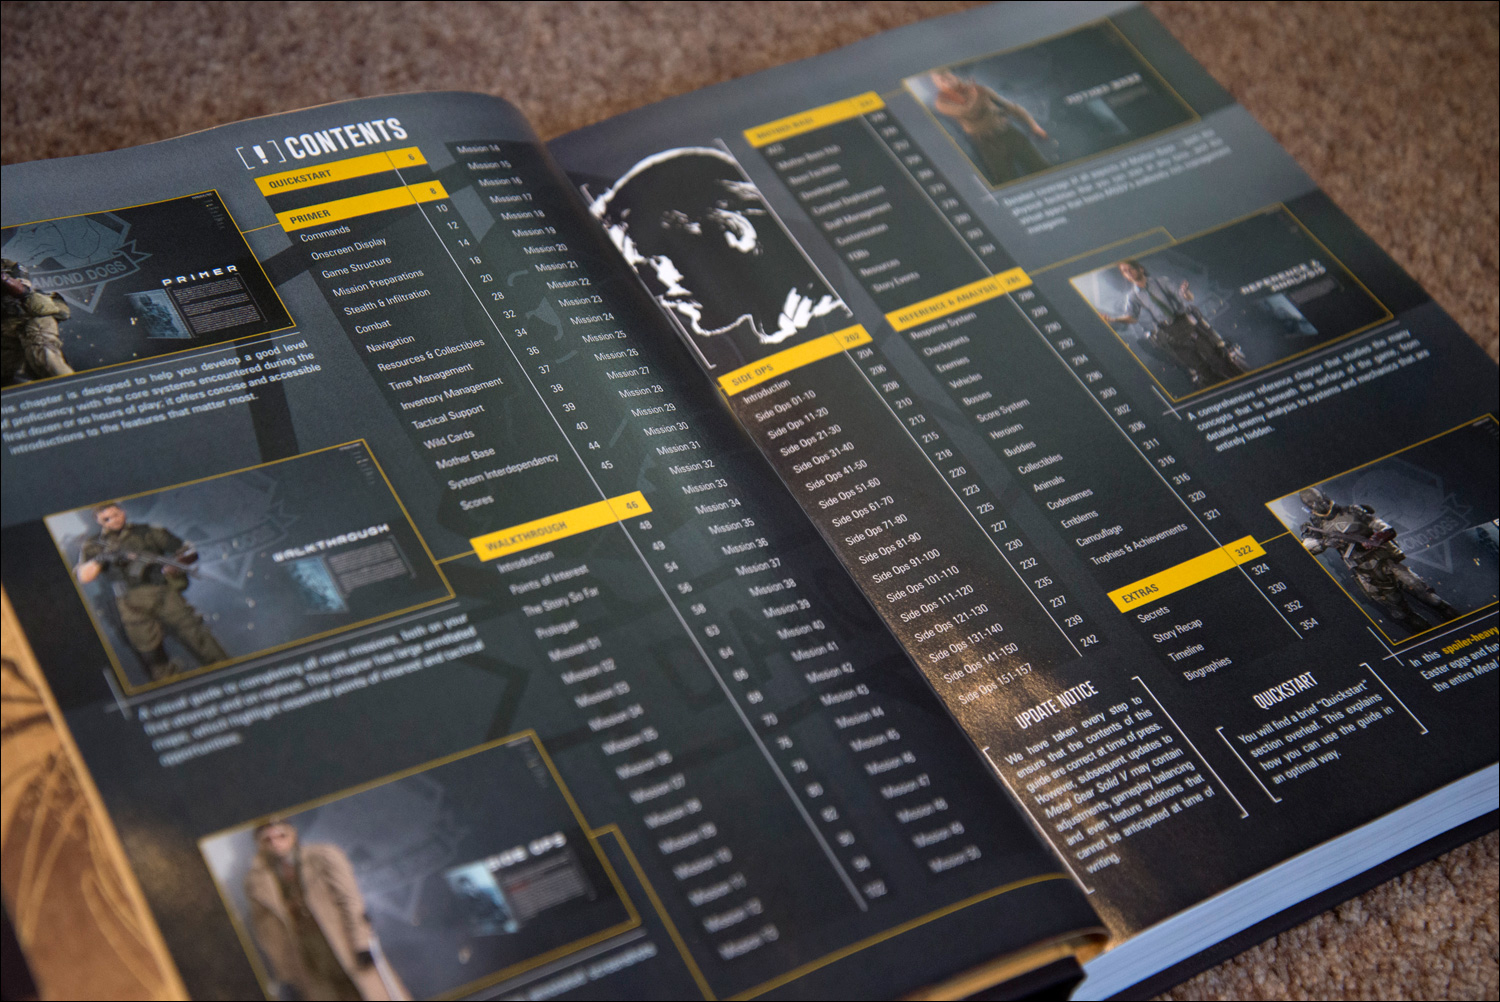 Metal-Gear-Solid-V-The-Phantom-Pain-Collector's-Edition-Guide-Contents